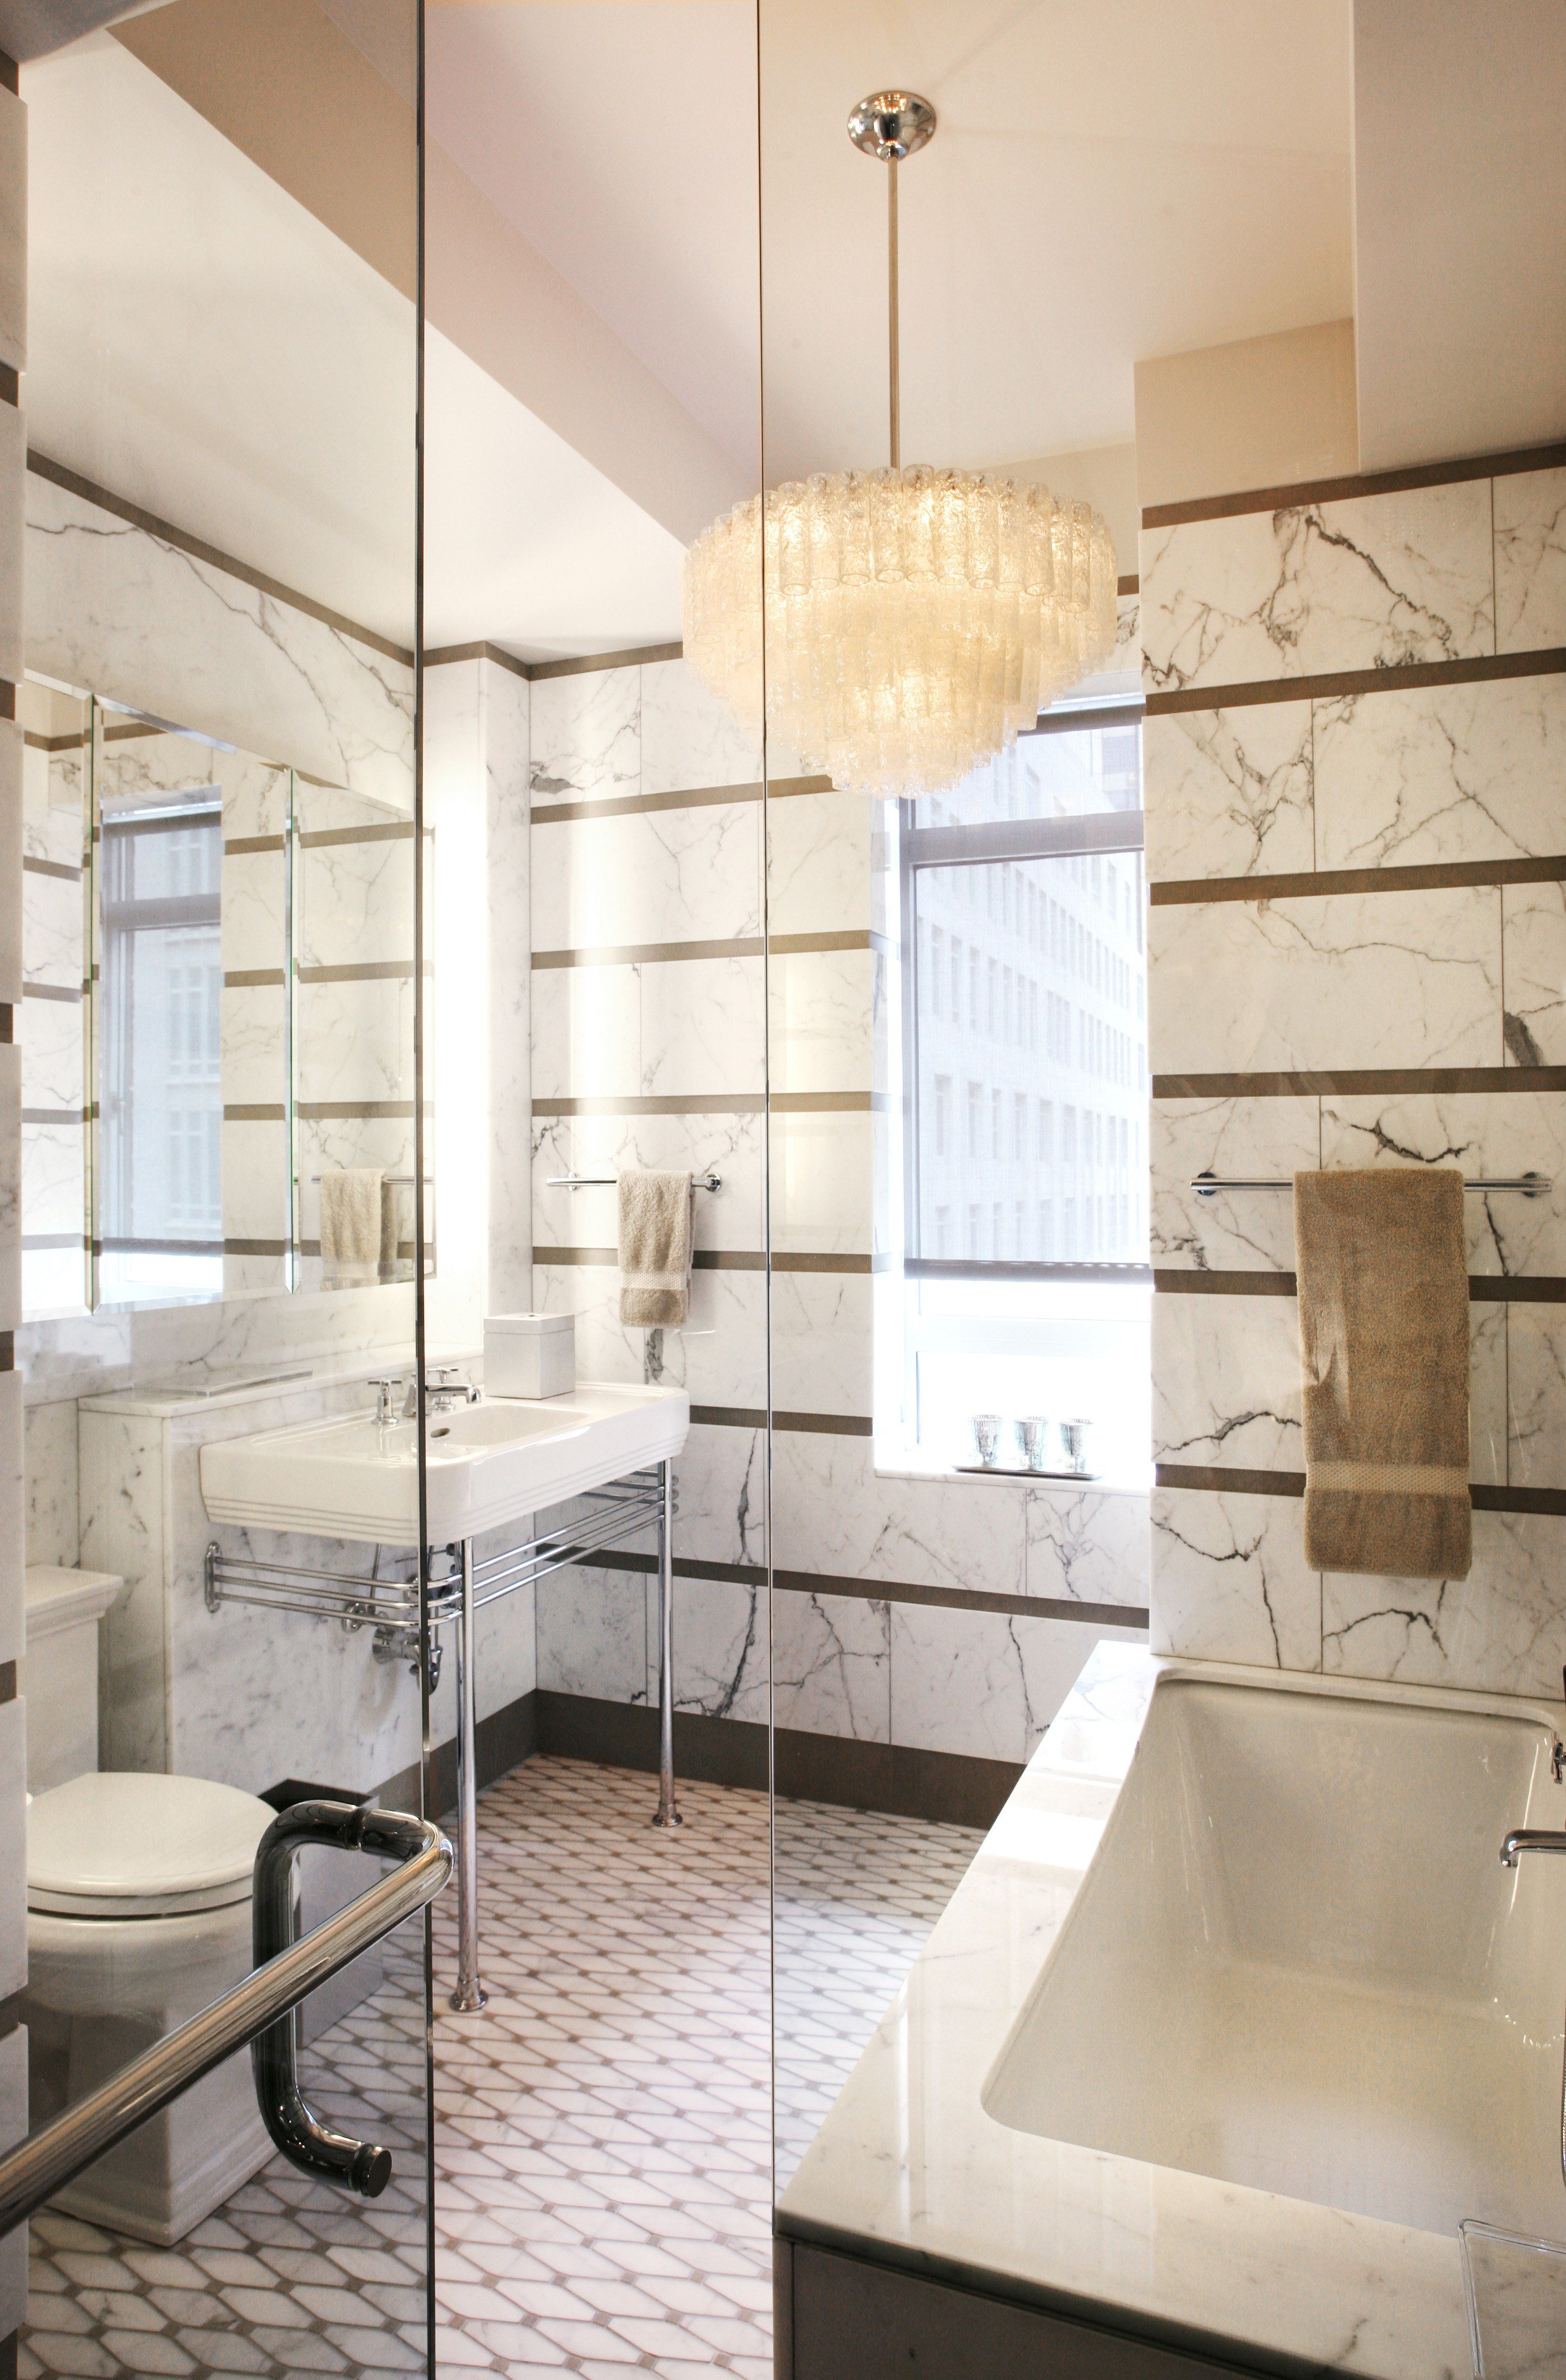 Beautiful A 1930s NYC Apartment Gets An Elegant New Bathroom Design Photos |  Architectural Digest